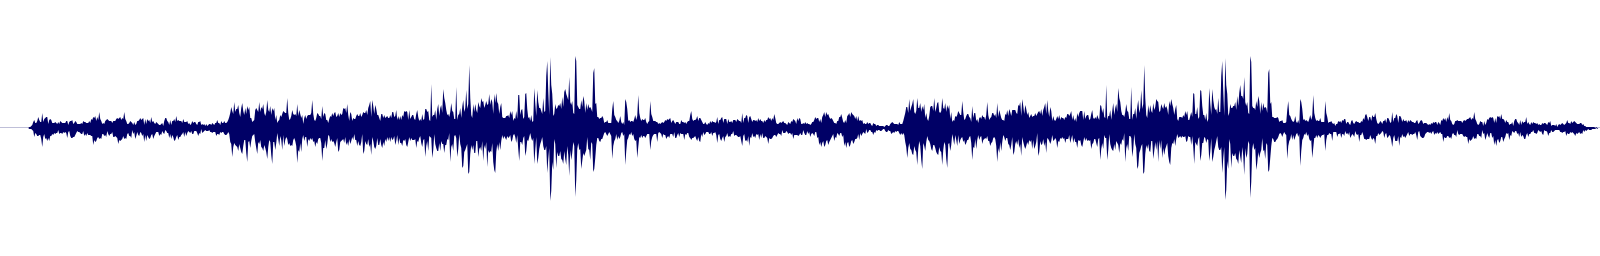 waveform of track #140663